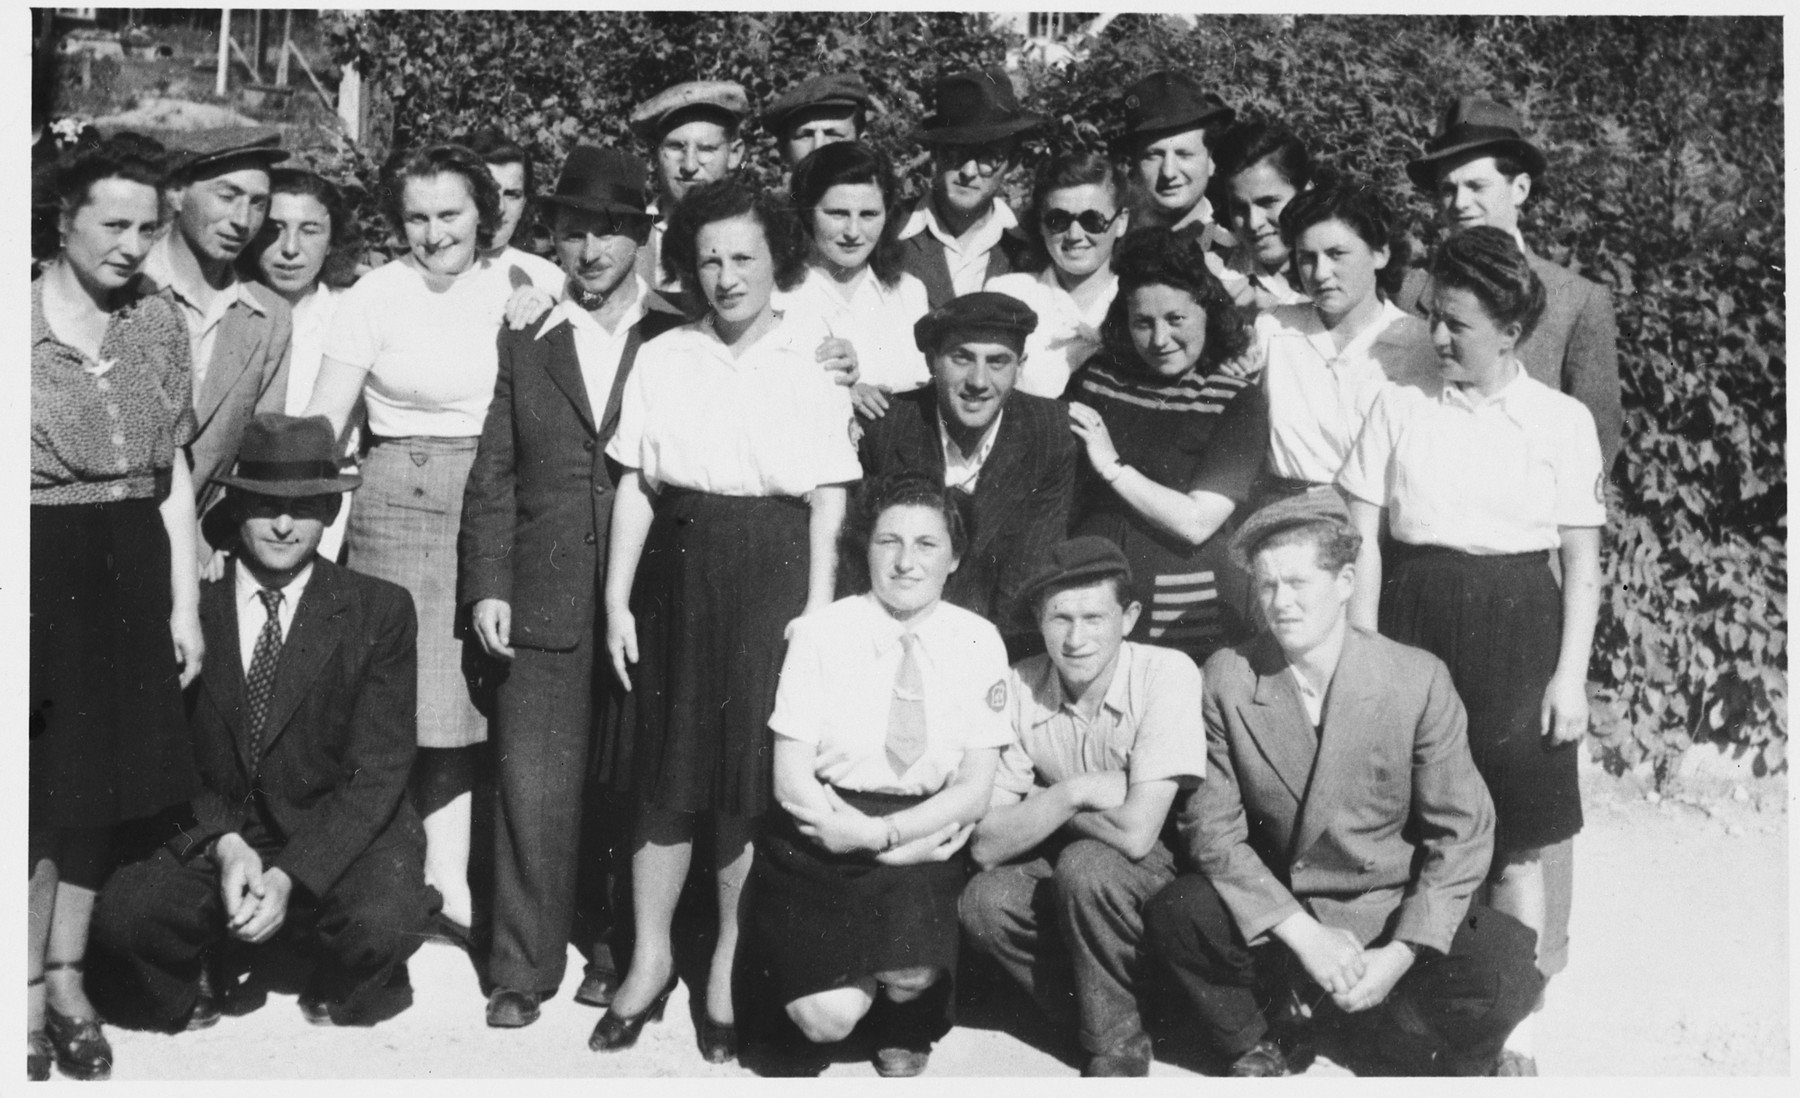 Group portrait of Jewish DPs in the Braunau displaced persons camp.